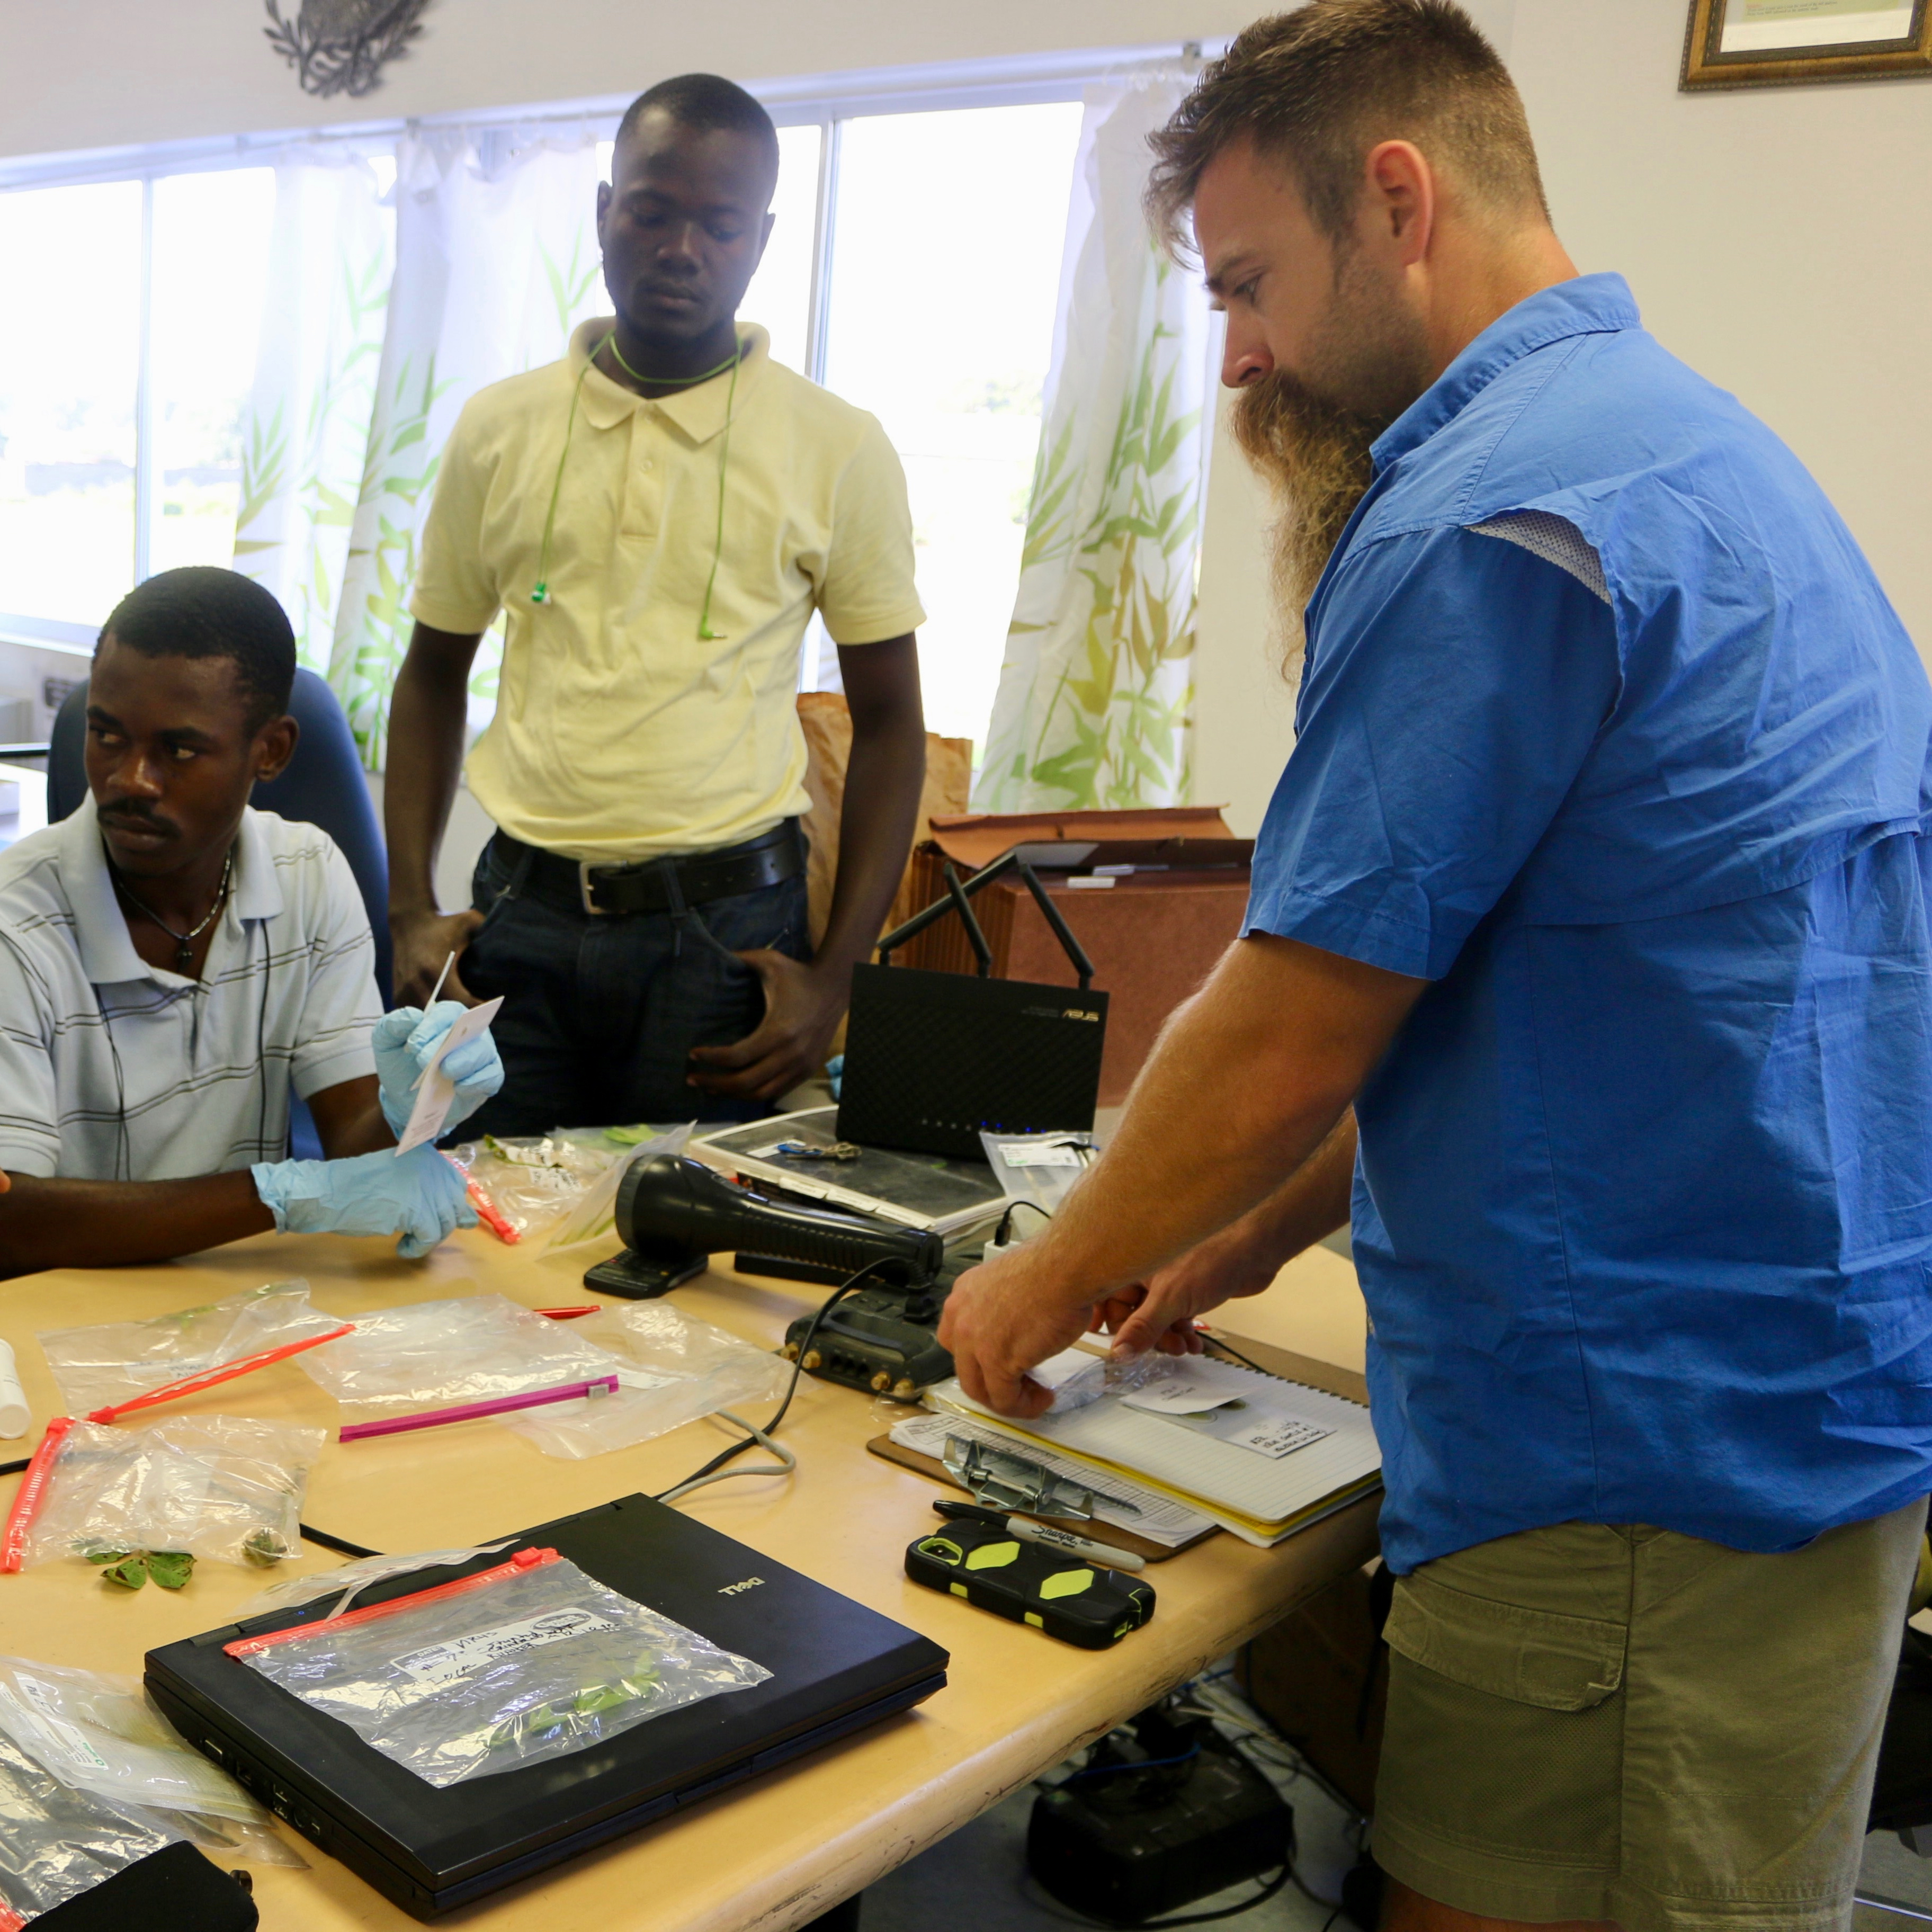 UGA graduate student Abraham Fulmer shows Haitian agronomists working at the Meds & Food for Kids facility in Cap-Haitian, Haiti, how to identify leaf spot in peanut in December 2016. Fulmer, who recently completed a PhD in plant pathology at the University of Georgia, did research in Haiti with the Feed the Future Peanut & Mycotoxin Innovation Lab, which was at UGA from 2012 to 2017 . The federal government recently awarded UGA another five-year peanut research program to battle global food insecurity.